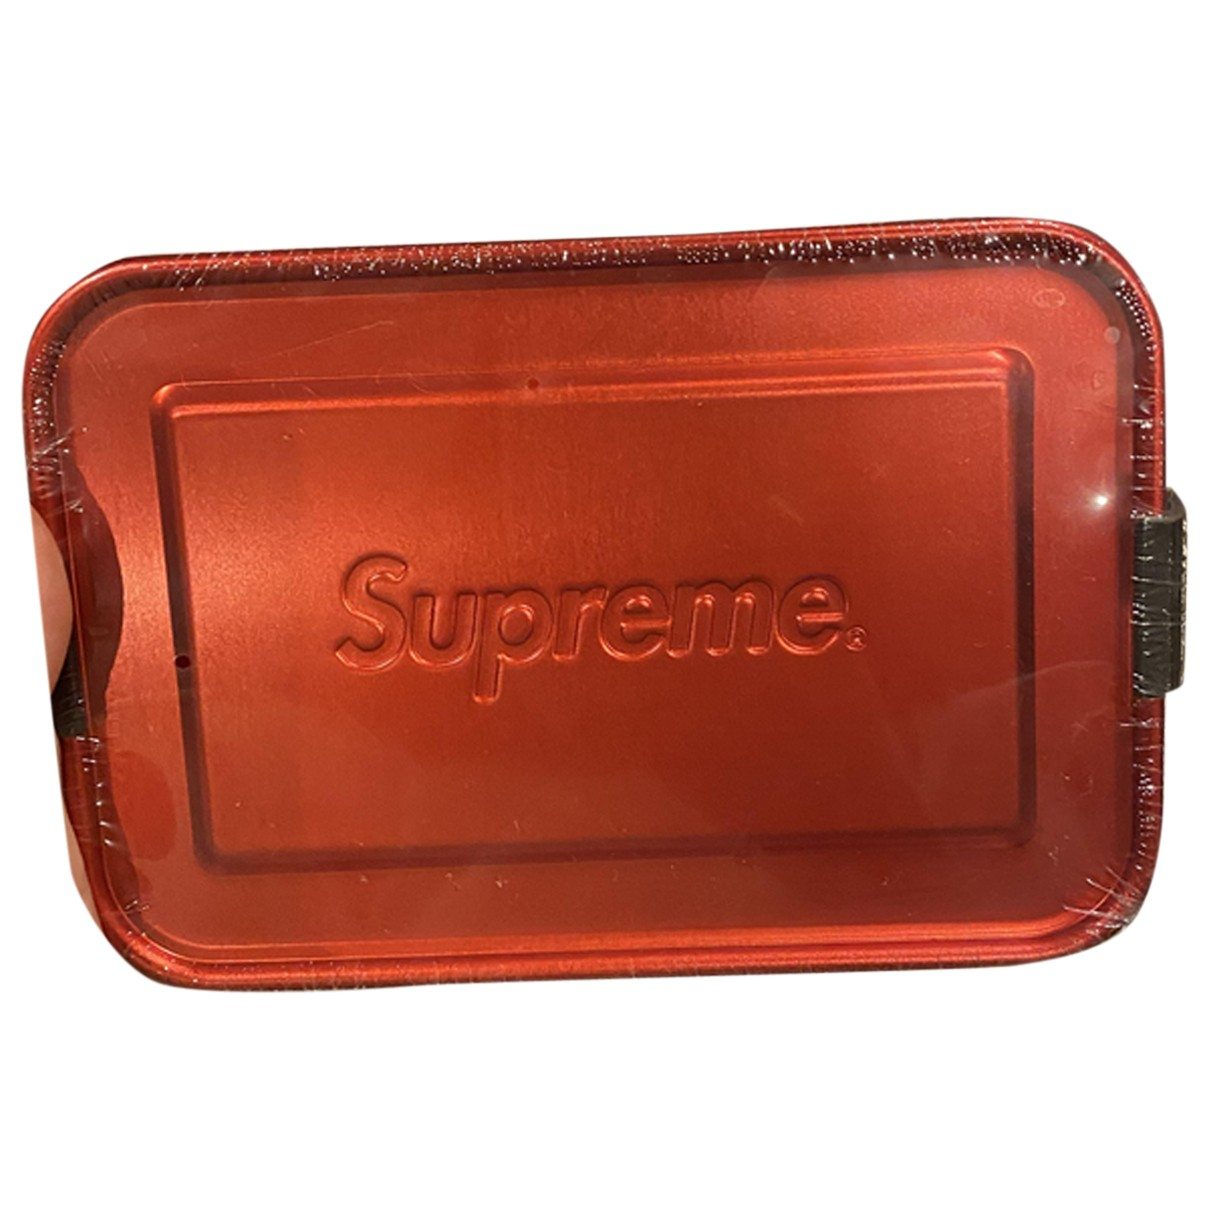 Supreme - Arts de la table   pour lifestyle - rouge